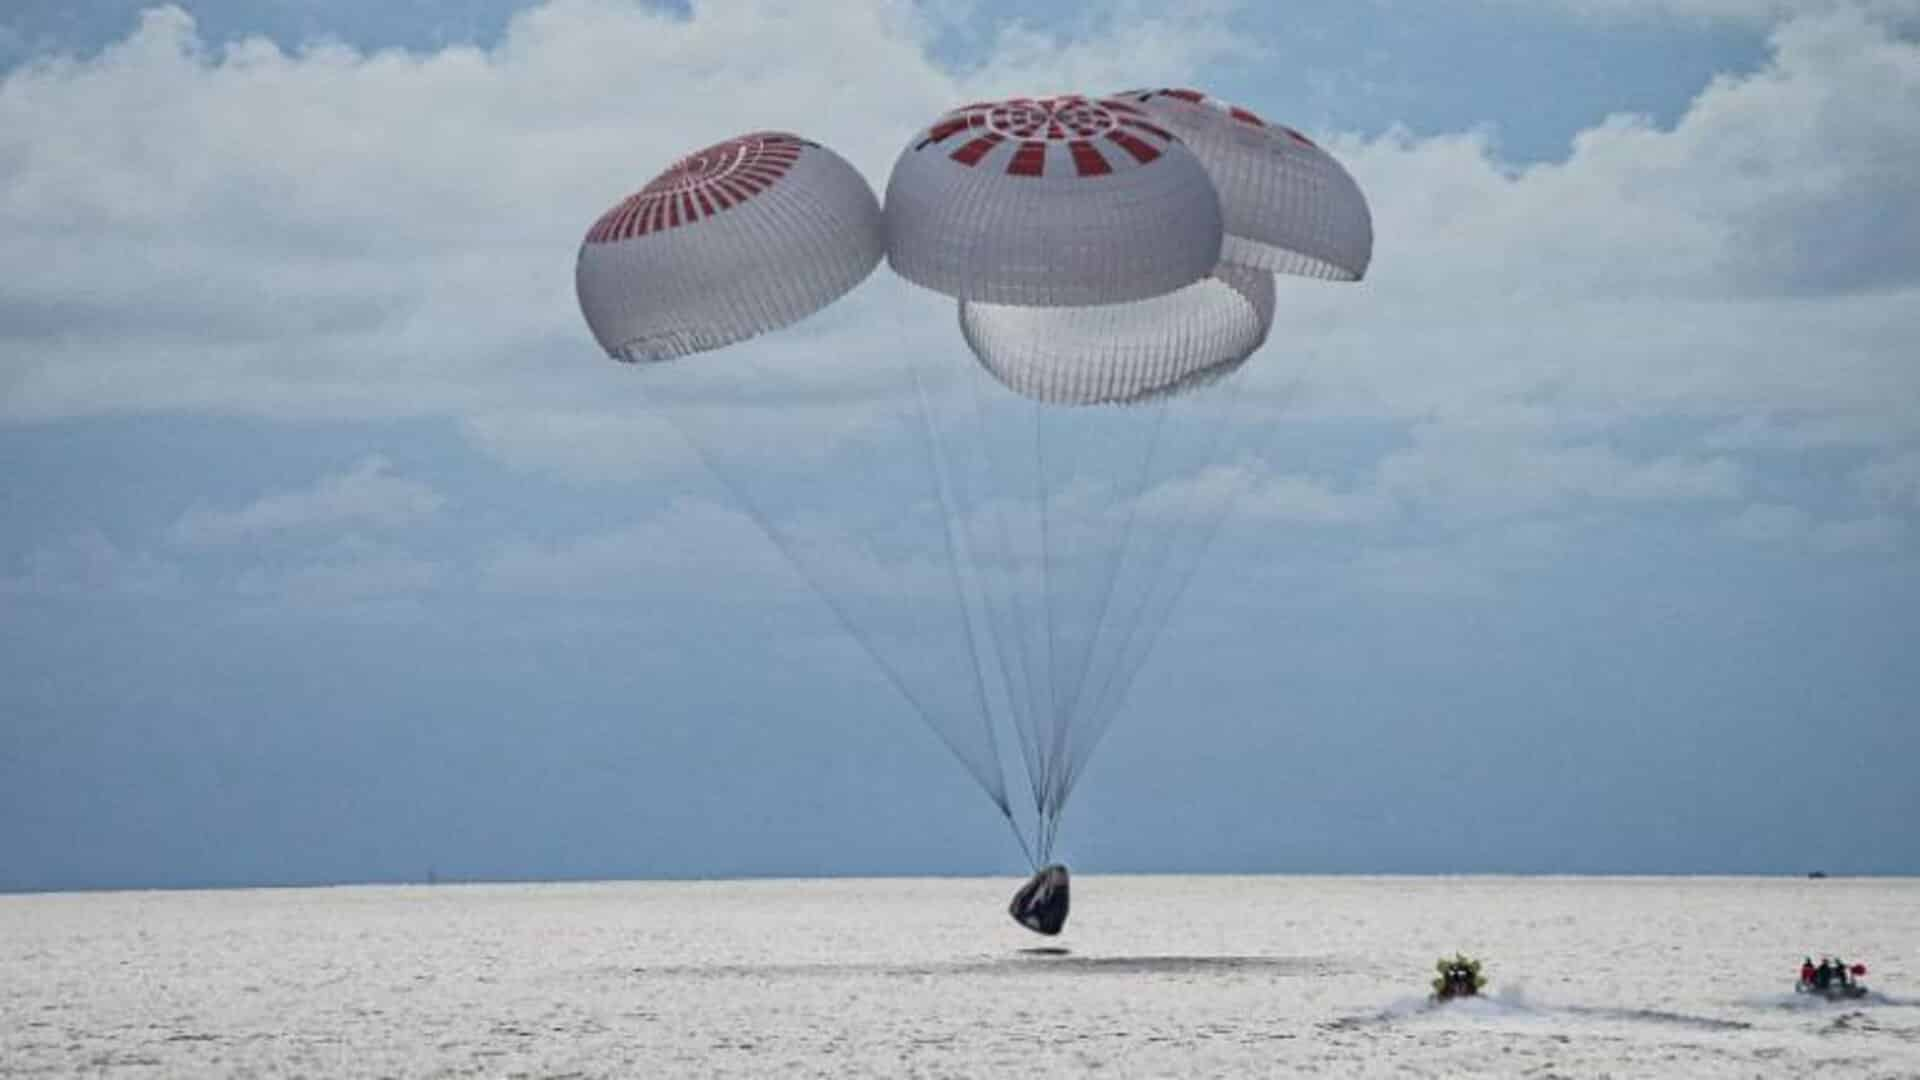 Historic successful space tourism mission returns 4 people to Earth aboard SpaceX Crew Dragon capsule